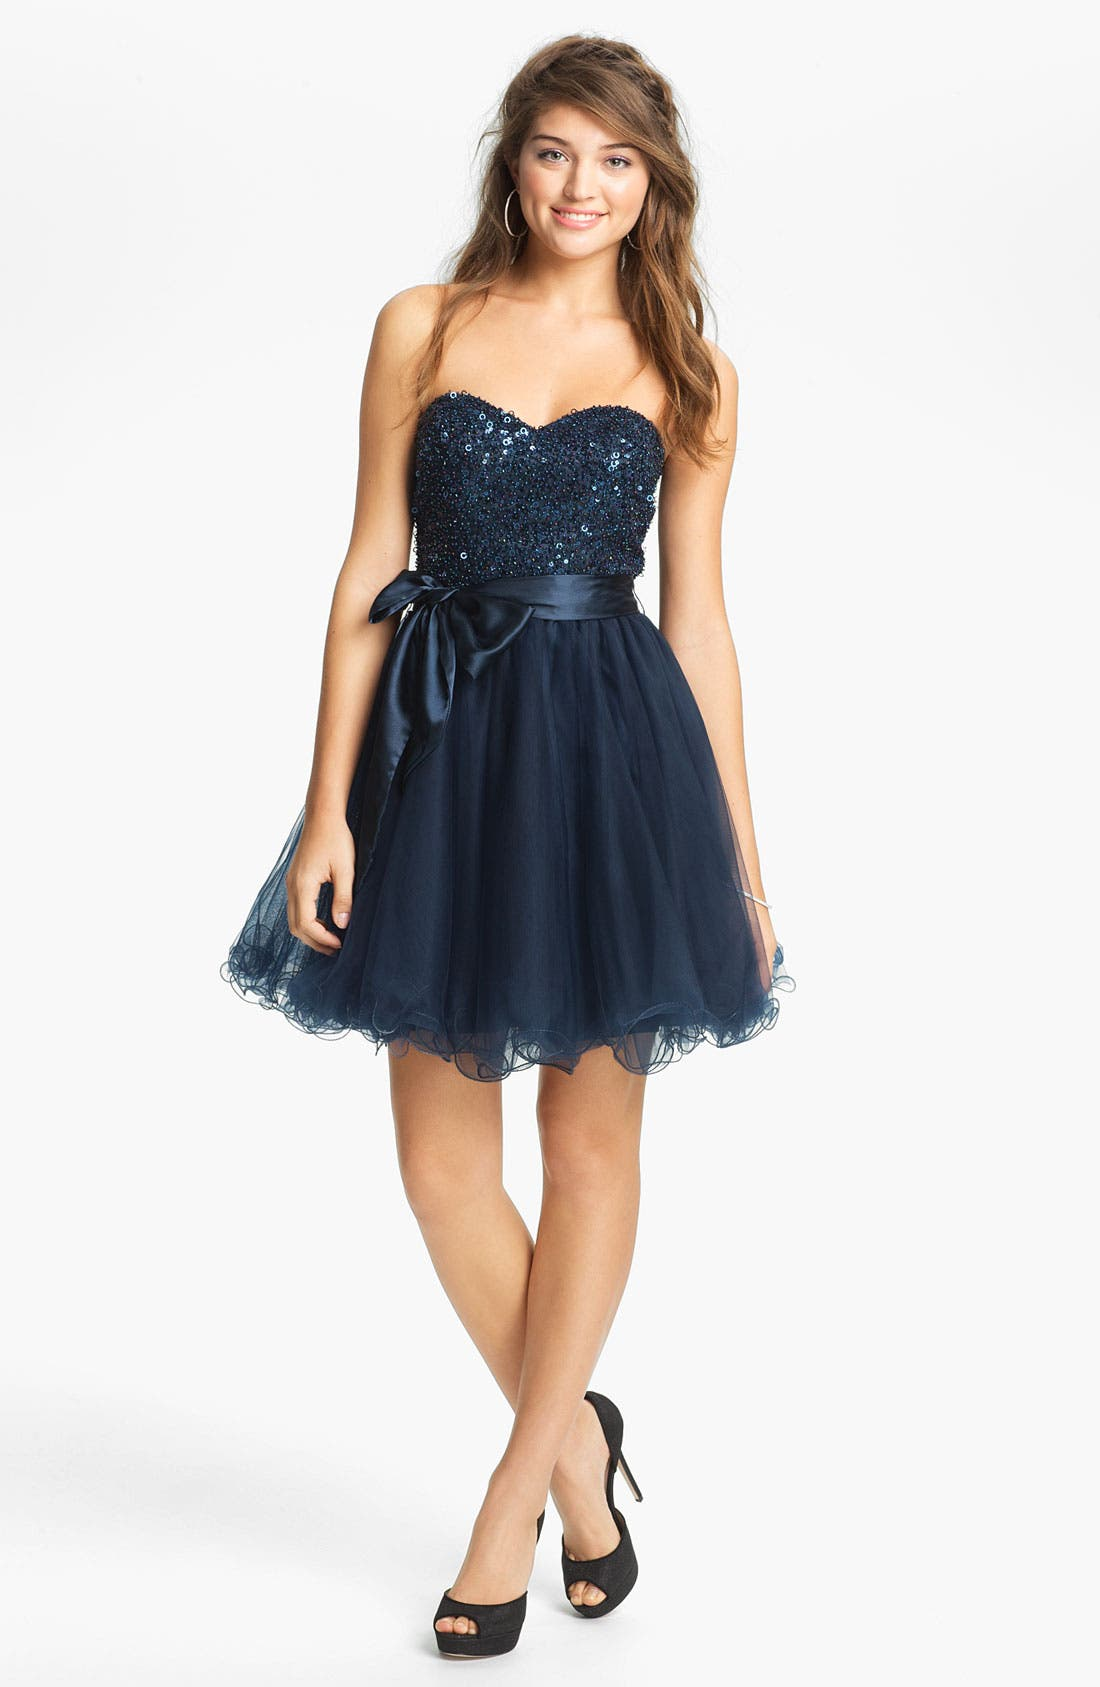 Alternate Image 1 Selected - Sean Collection Embellished Strapless Tulle Cocktail Dress (Online Only)